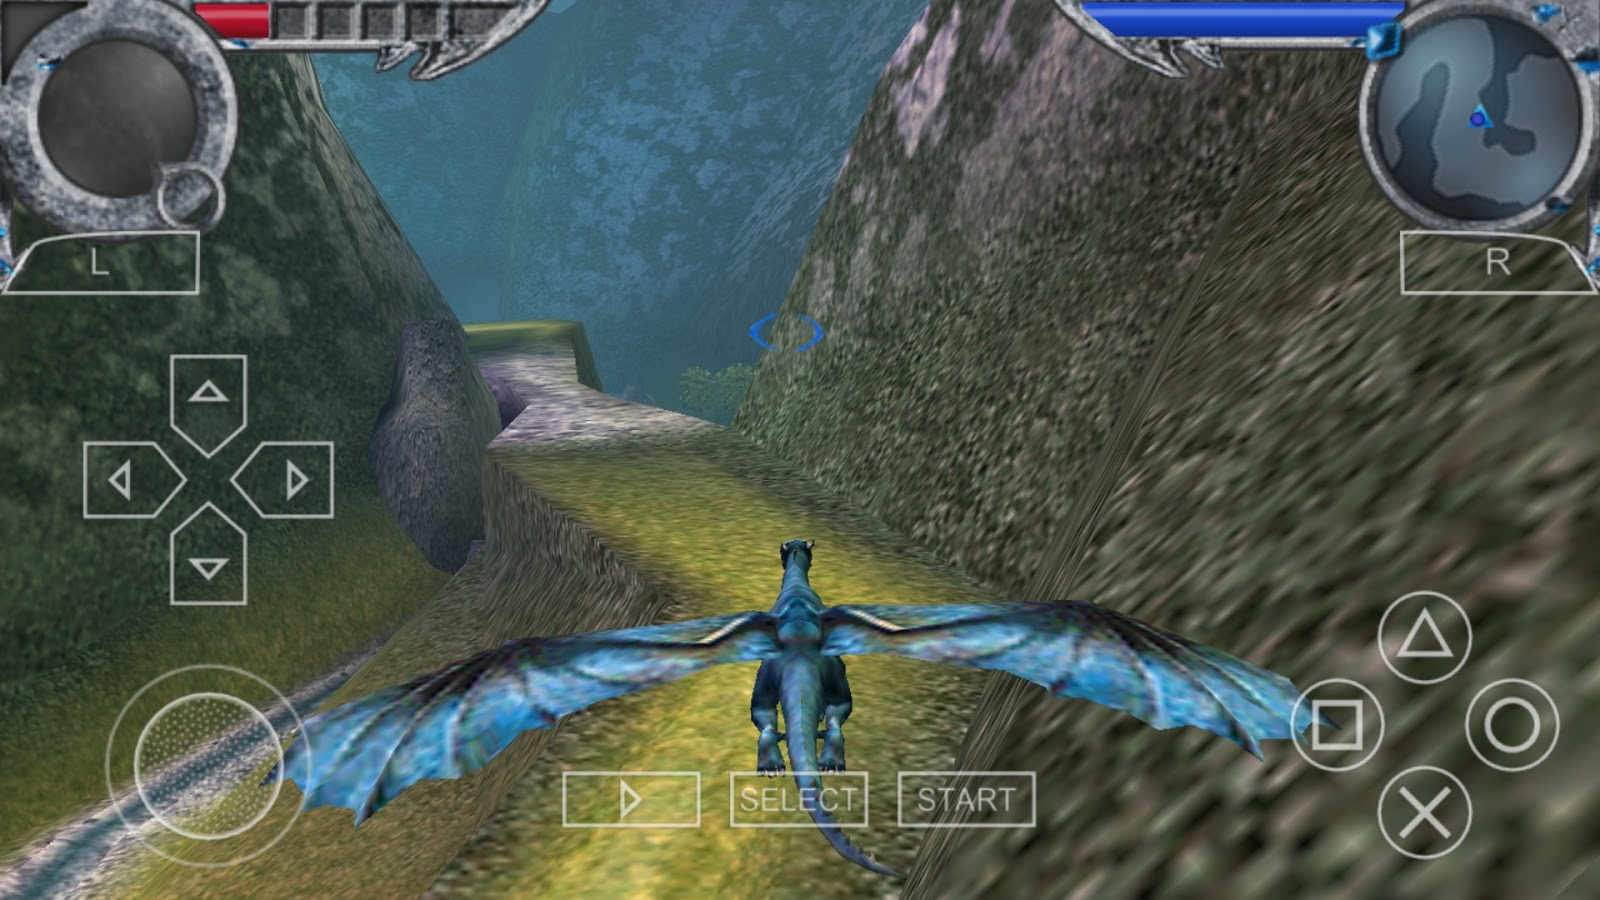 Download Eragon game for psp/ppsspp emulator (Iso/Cso) game